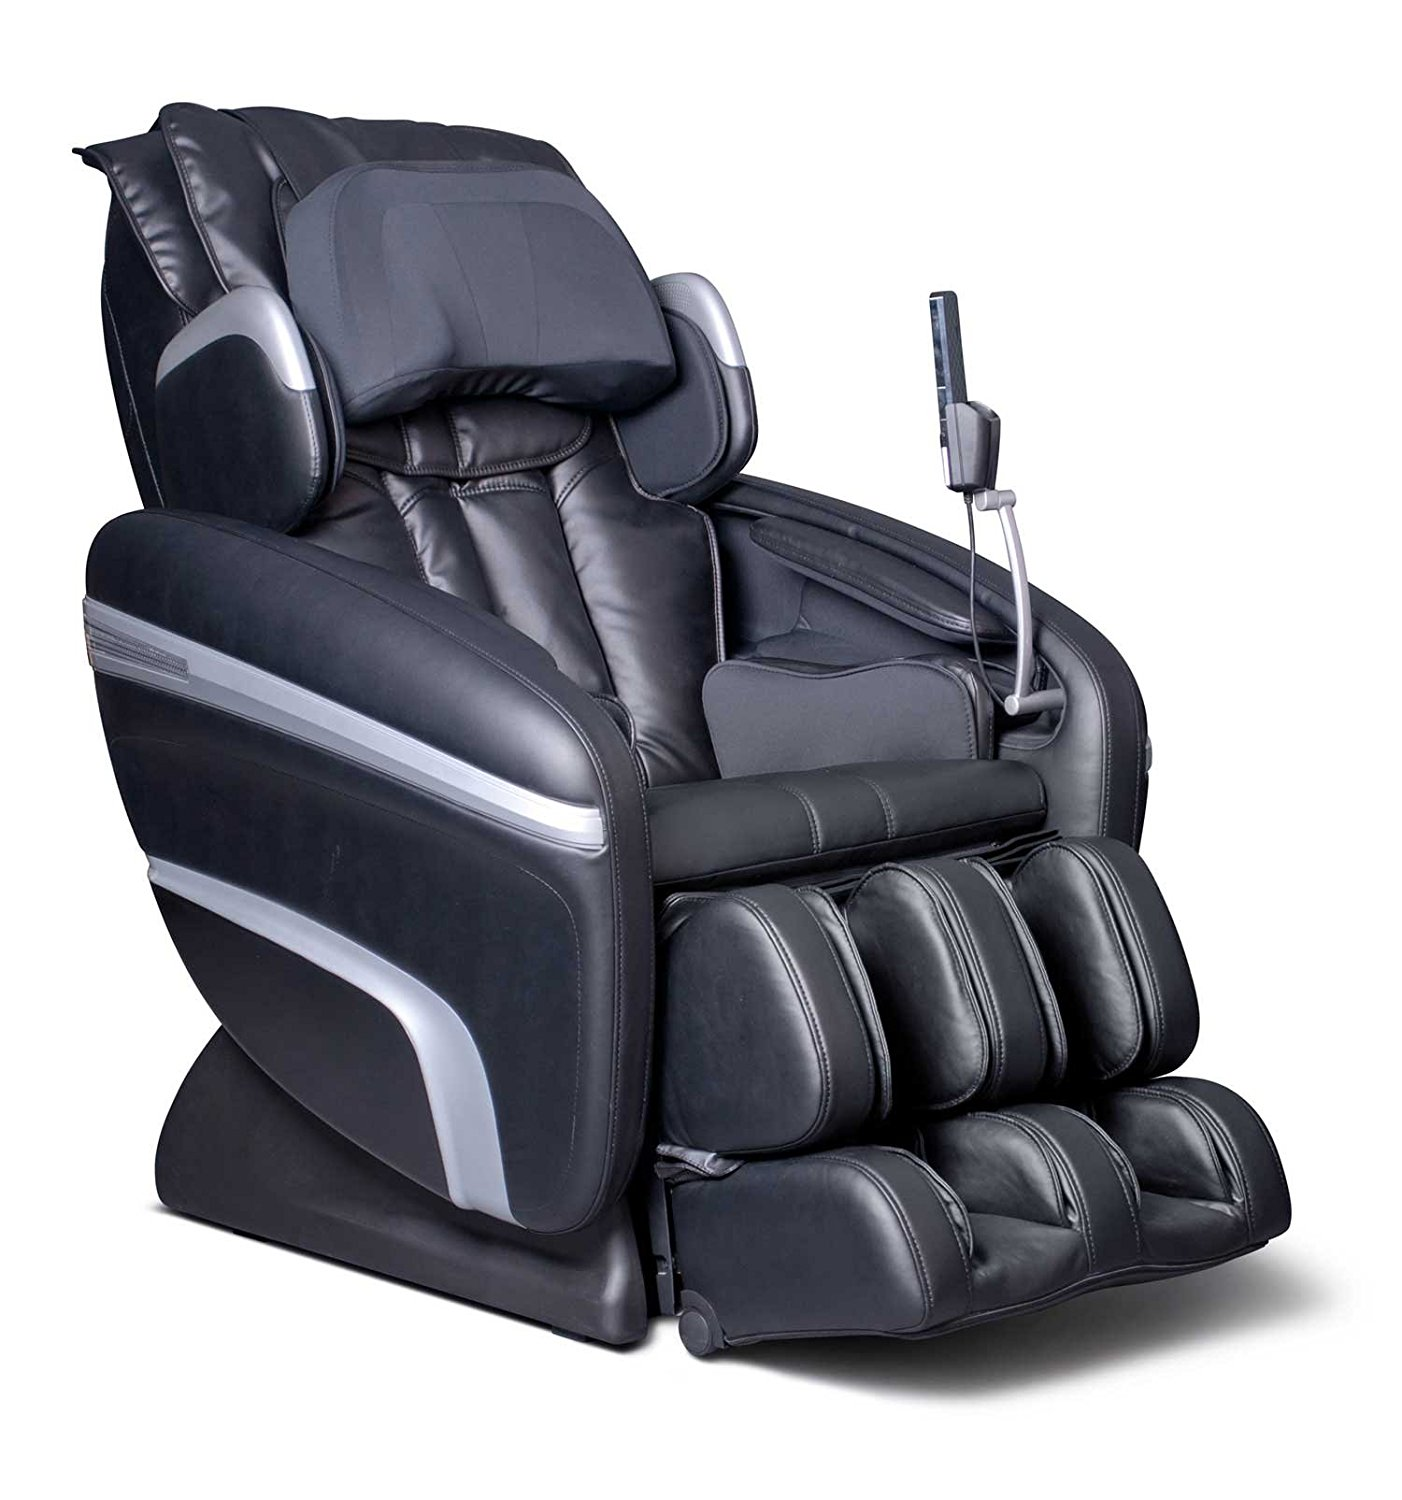 Osaki OS-6000A Deluxe ZERO GRAVITY Massage Chair, Black, Synthetic Leather, Designed with a set of S-track movable intelligent massage robot , special focus on the neck, shoulder and lumbar massage according to body curve, Automatically detect the whole body curve as well as make micro adjustments,